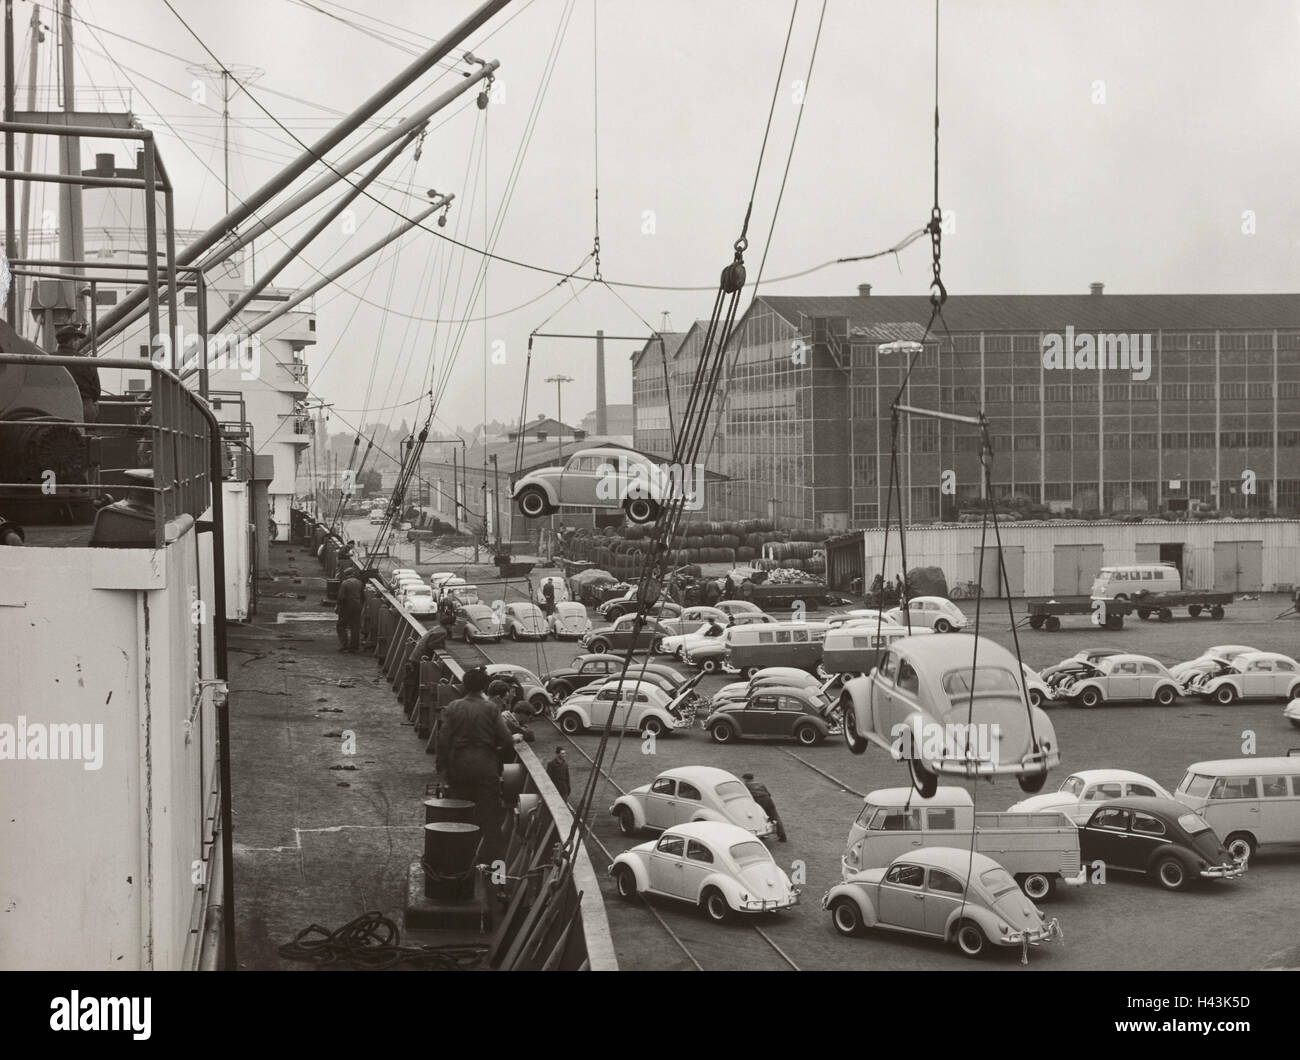 Germany, harbour, freighter, cranes, workers, VW Beetle, load, b/w, economy, car industry, cargo harbour, autotransport, - Stock Image